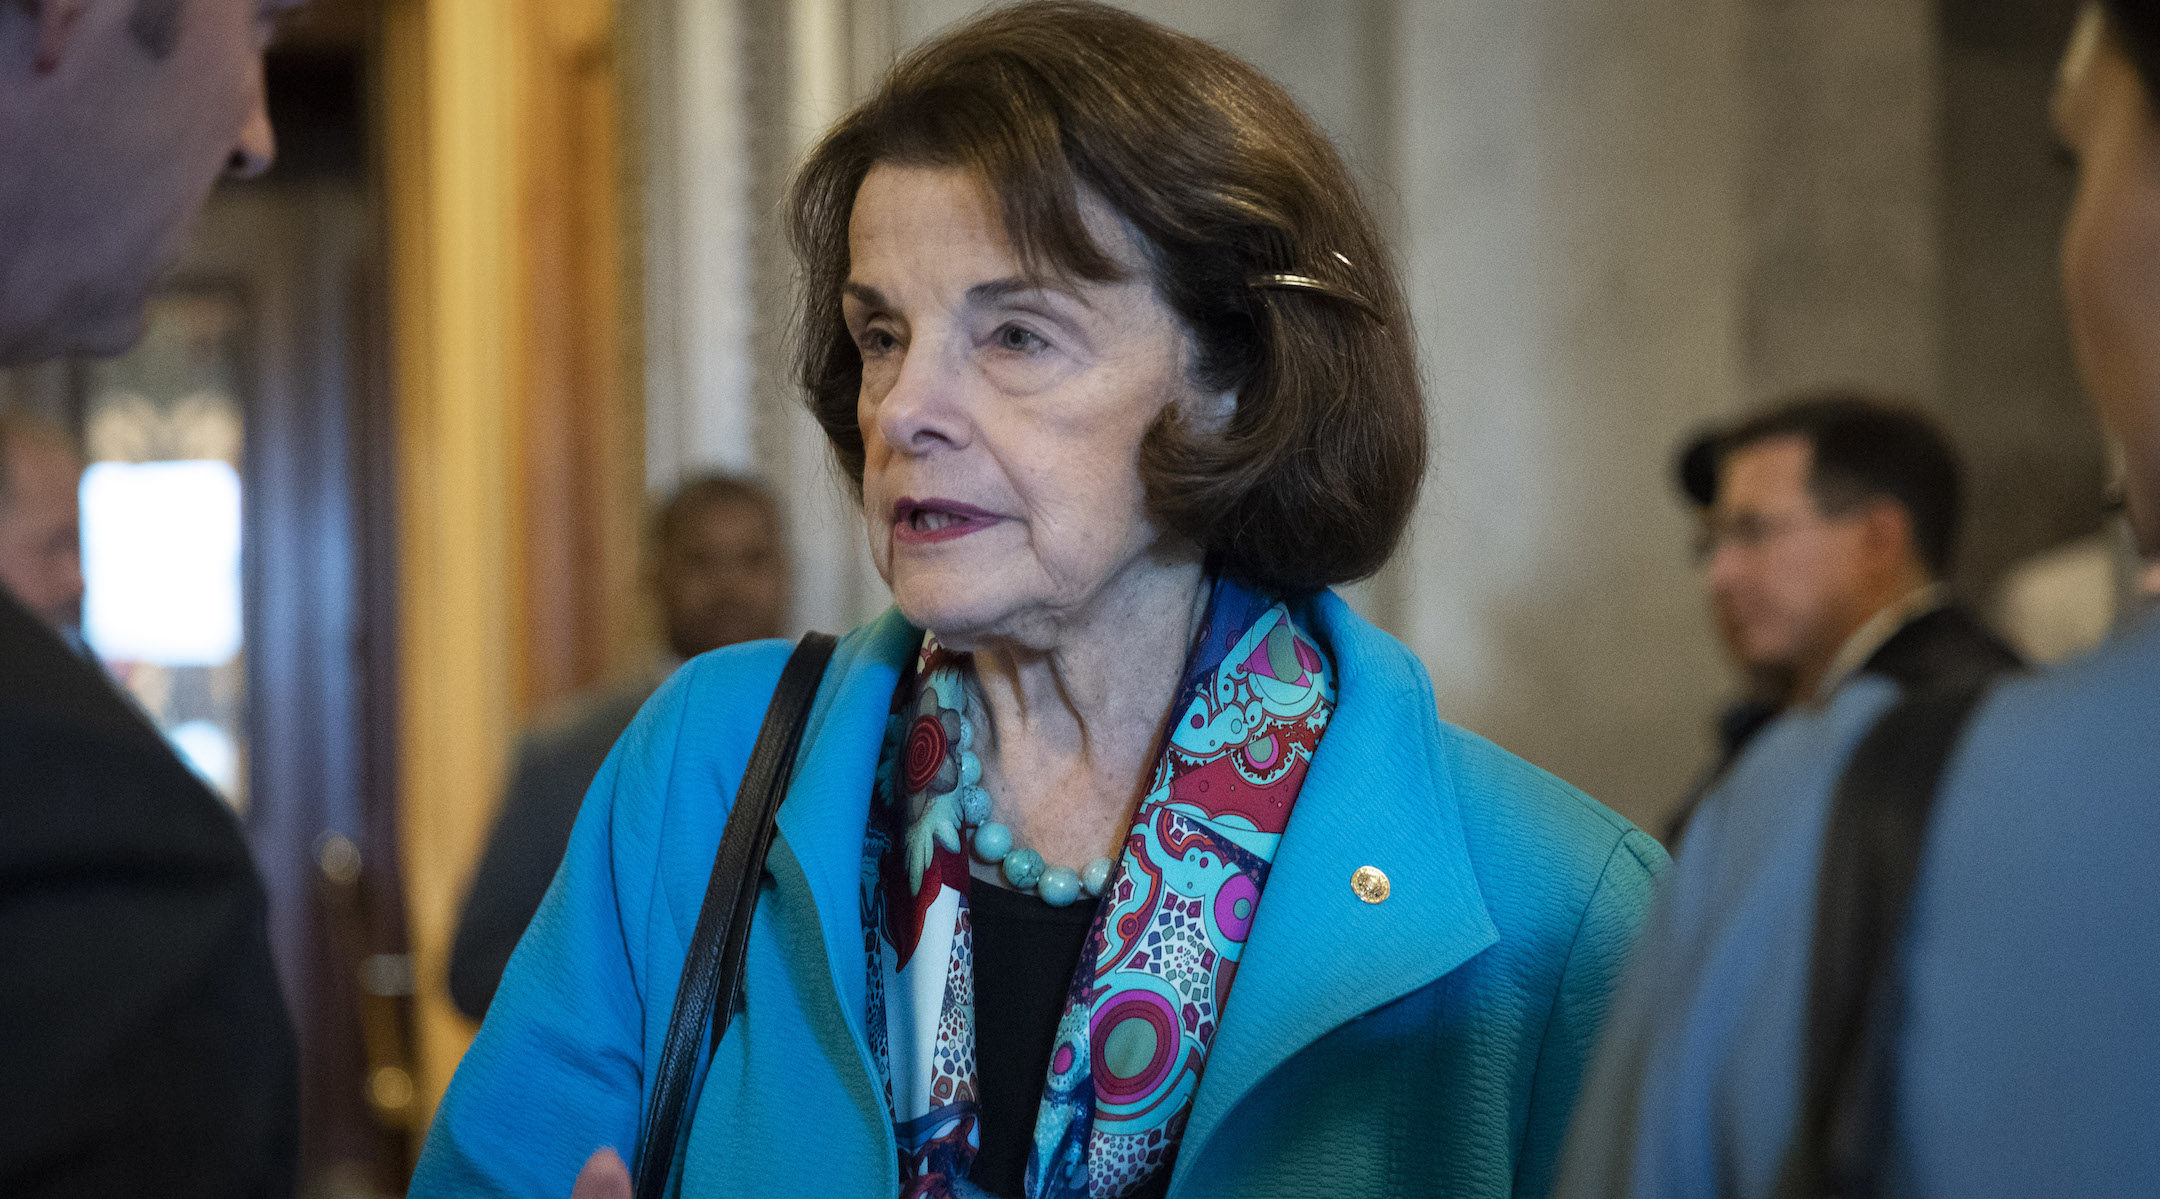 Dianne Feinstein talks to reporters as she exits the Senate floor, Oct. 6, 2018. (Photo/JTA-Drew Angerer-Getty Images)